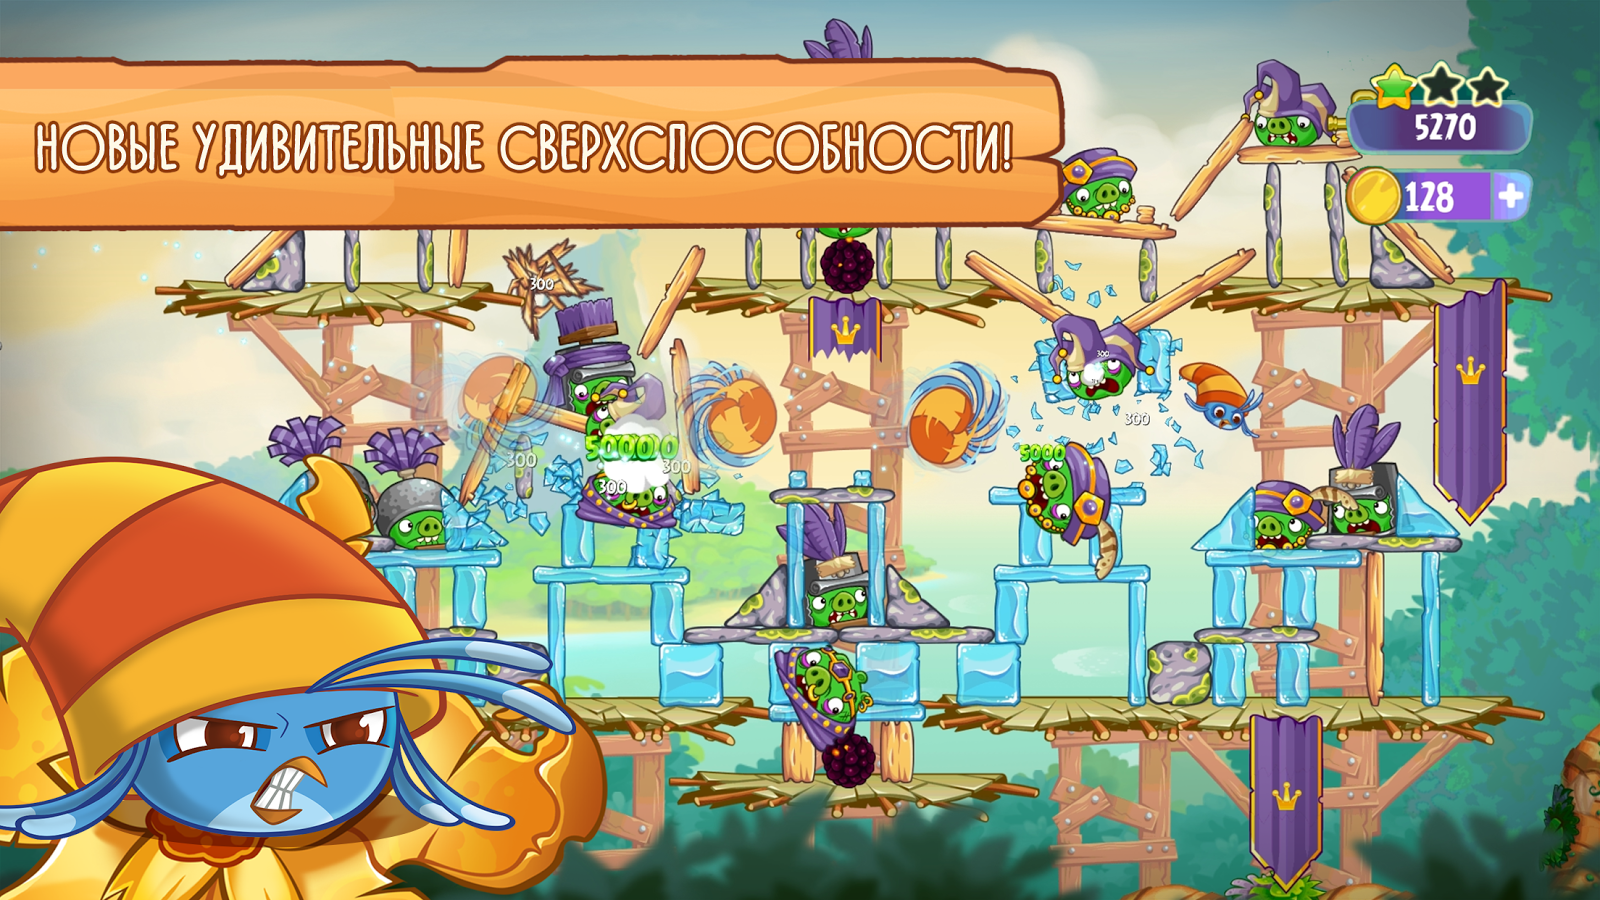 Angry birds: stella for android download apk free.